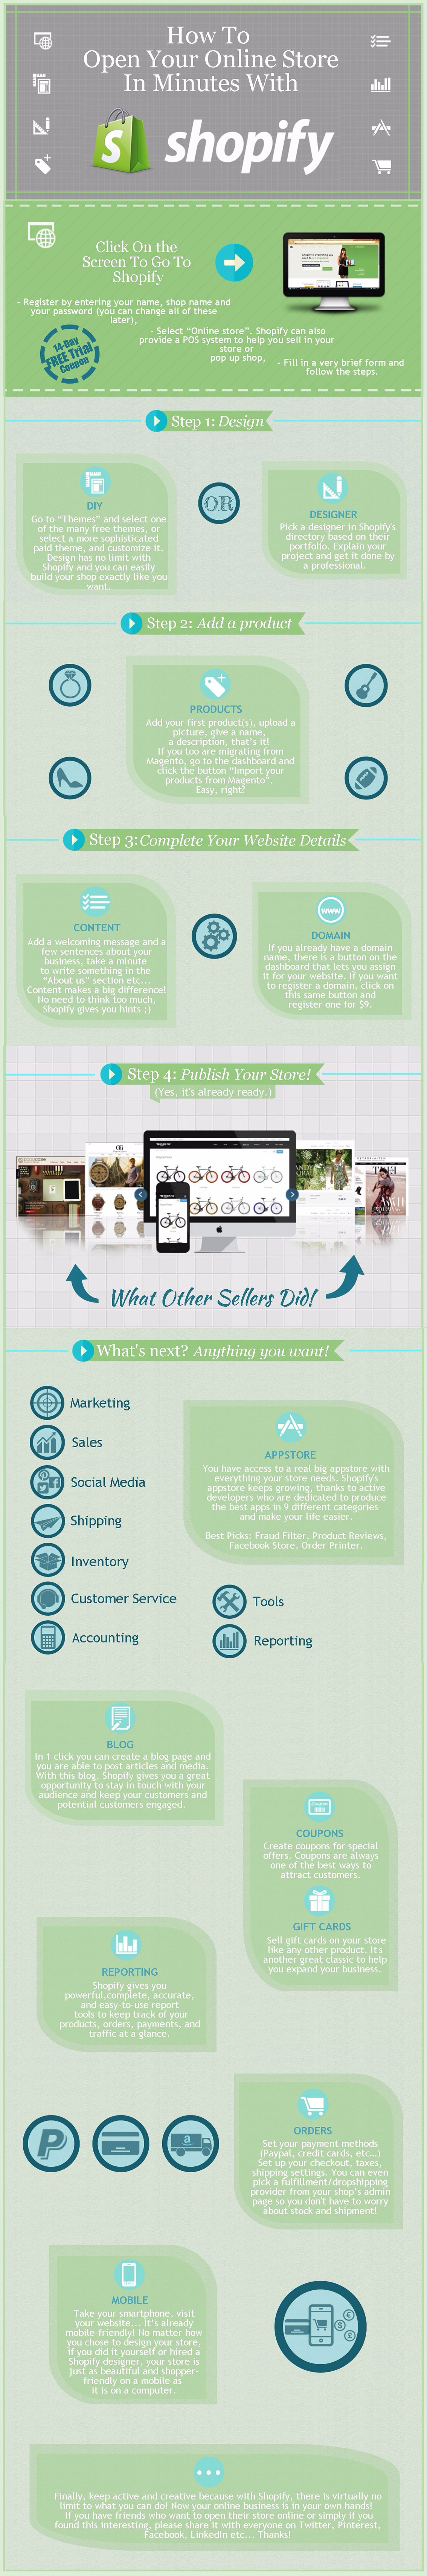 How to Use Shopify to Open Online Store in Minutes Infographic